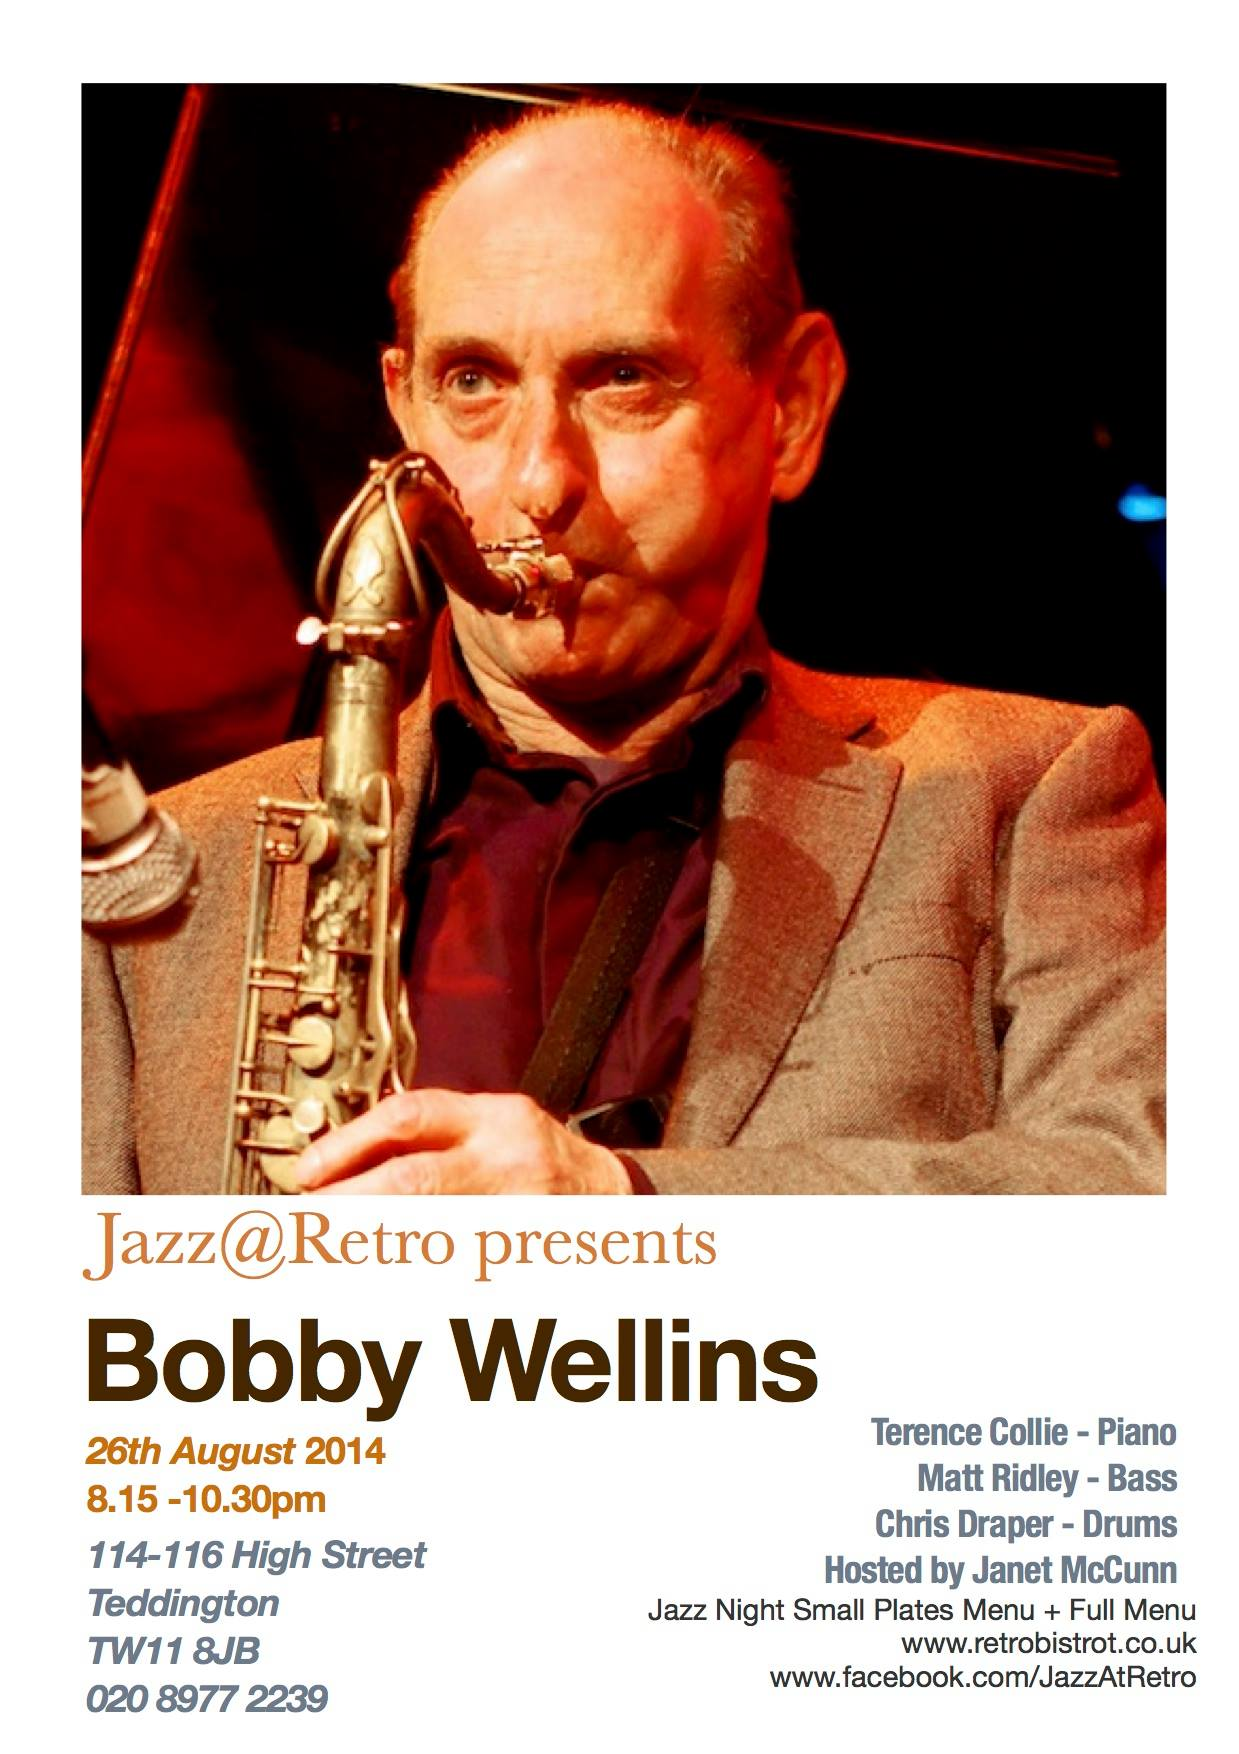 Bobby guests with Terrence Collie (piano), Matt Ridley (bass), Chris Draper (drums) at this very popular jazz night at premier South London restaurant, Retro Bistro